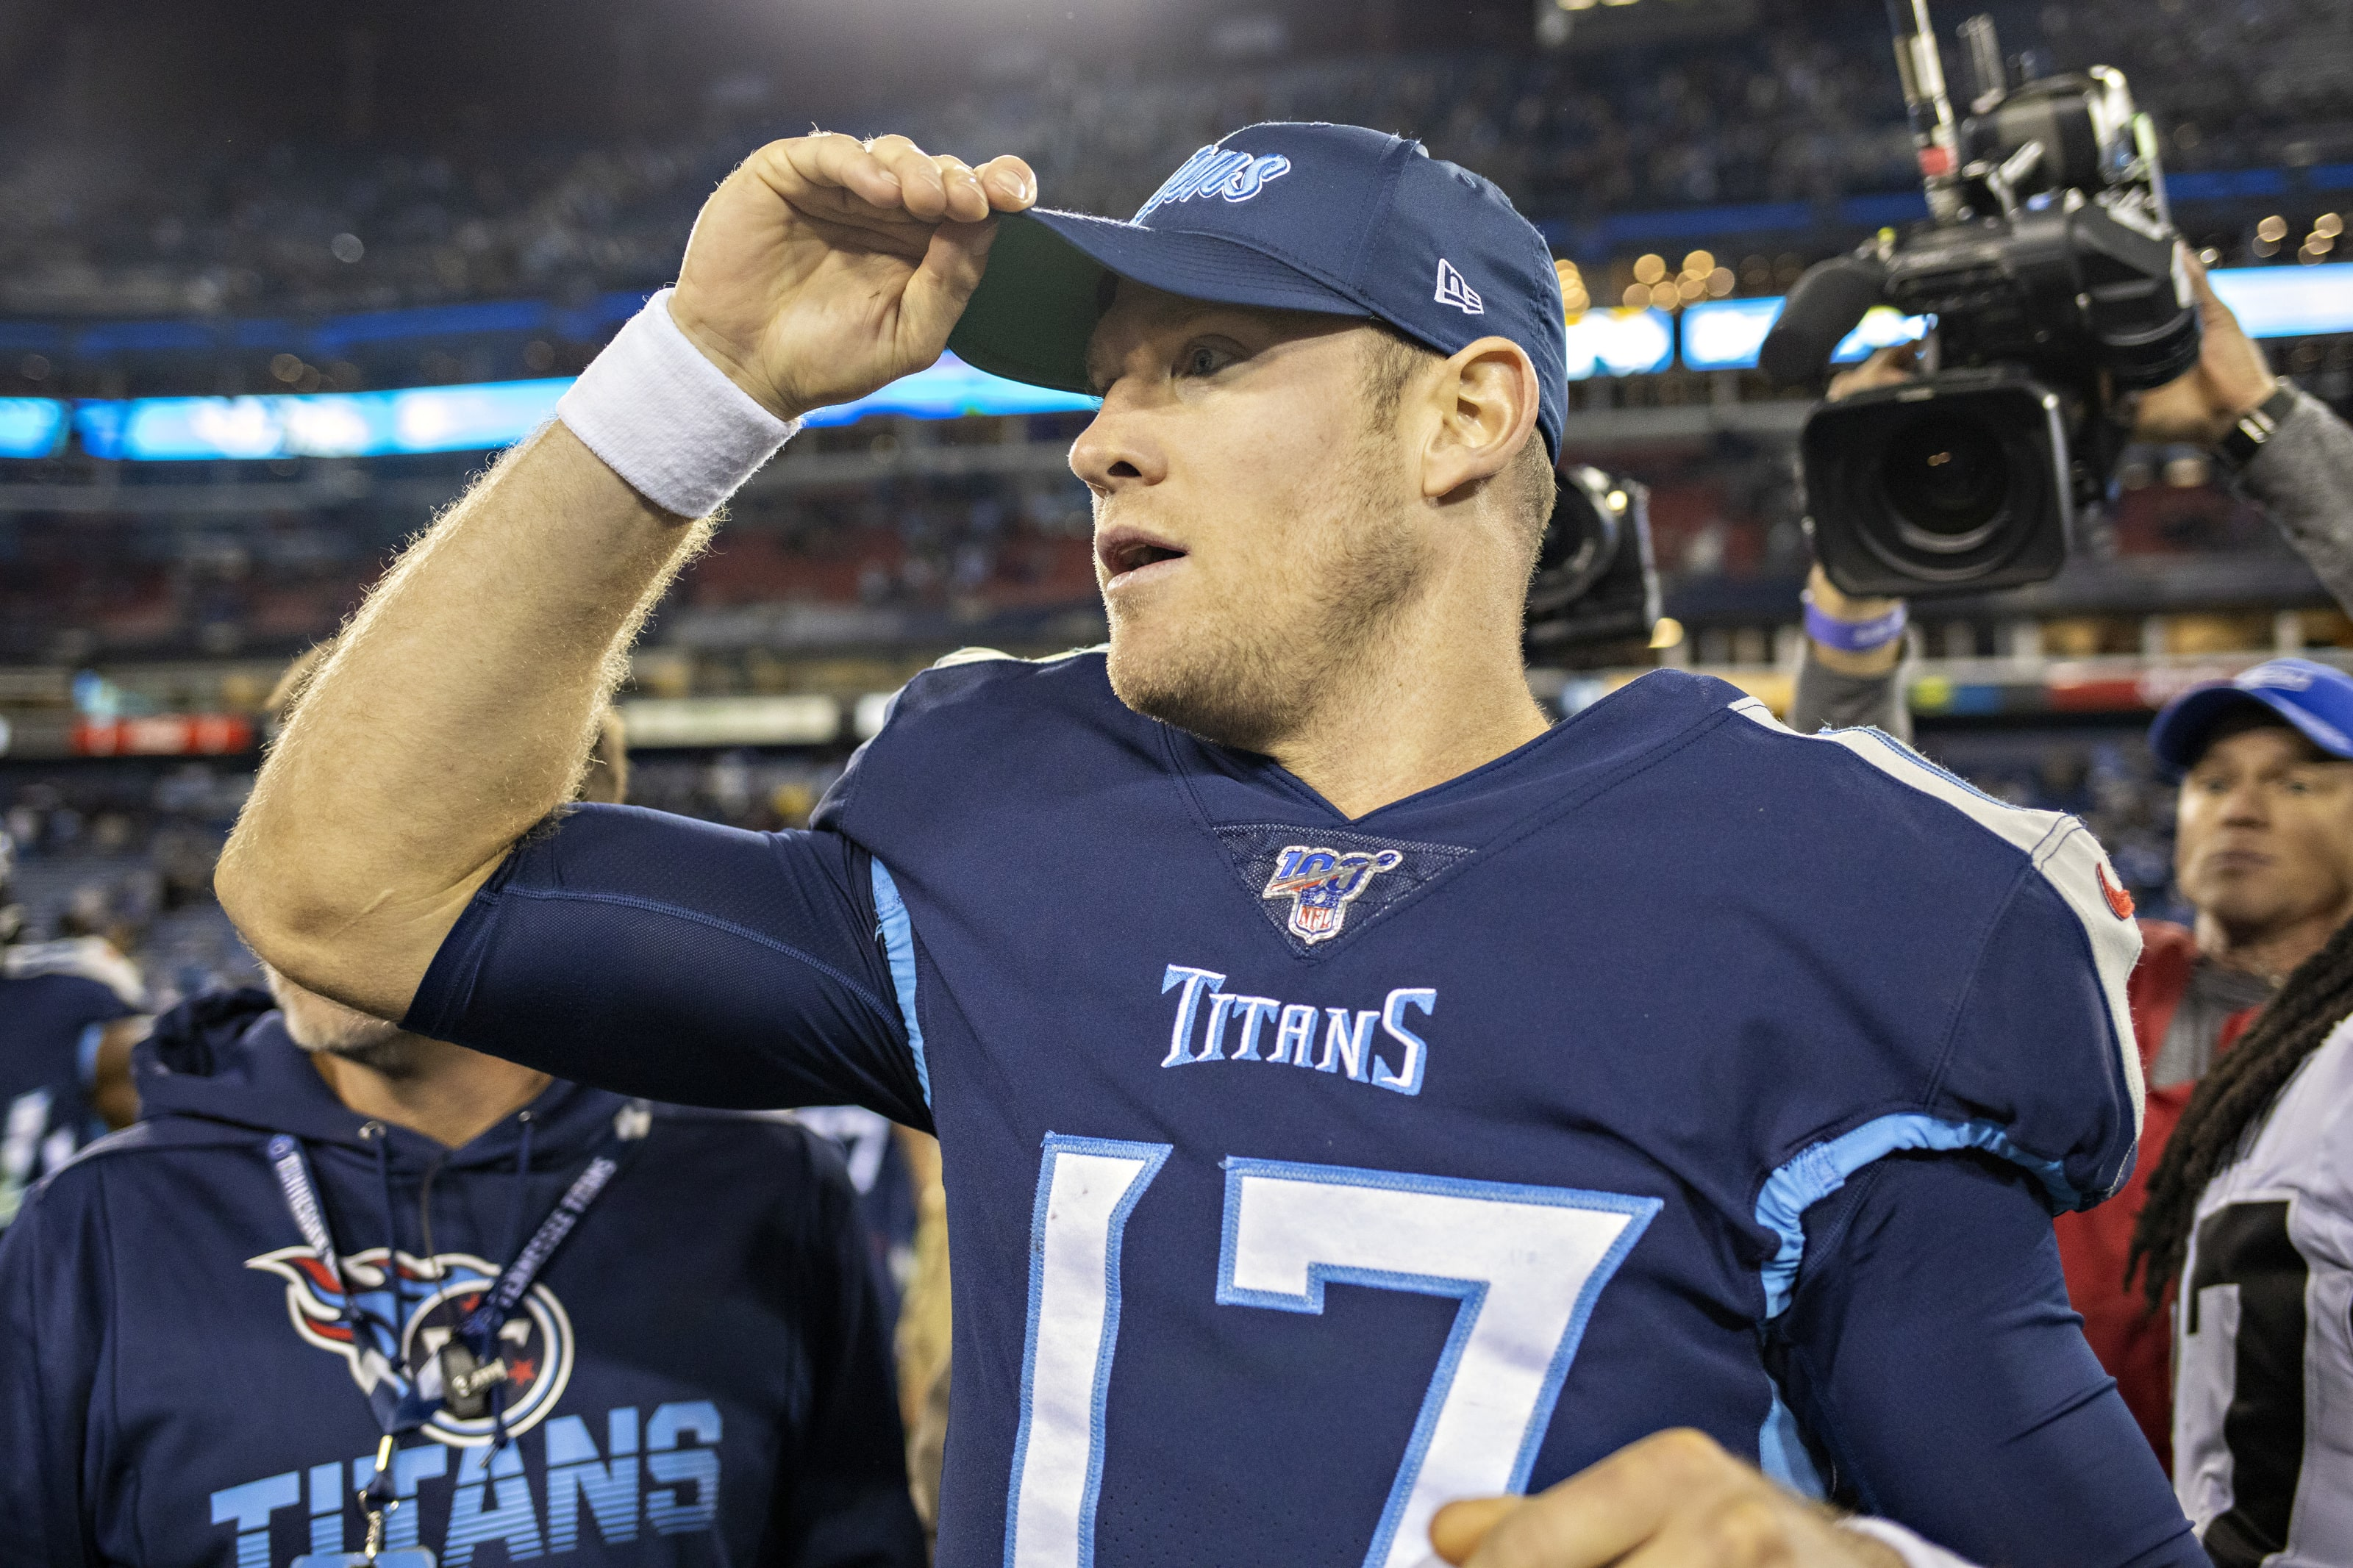 Titans Vs Texans Predictions Nfl Experts Make Week 15 Picks Page 2